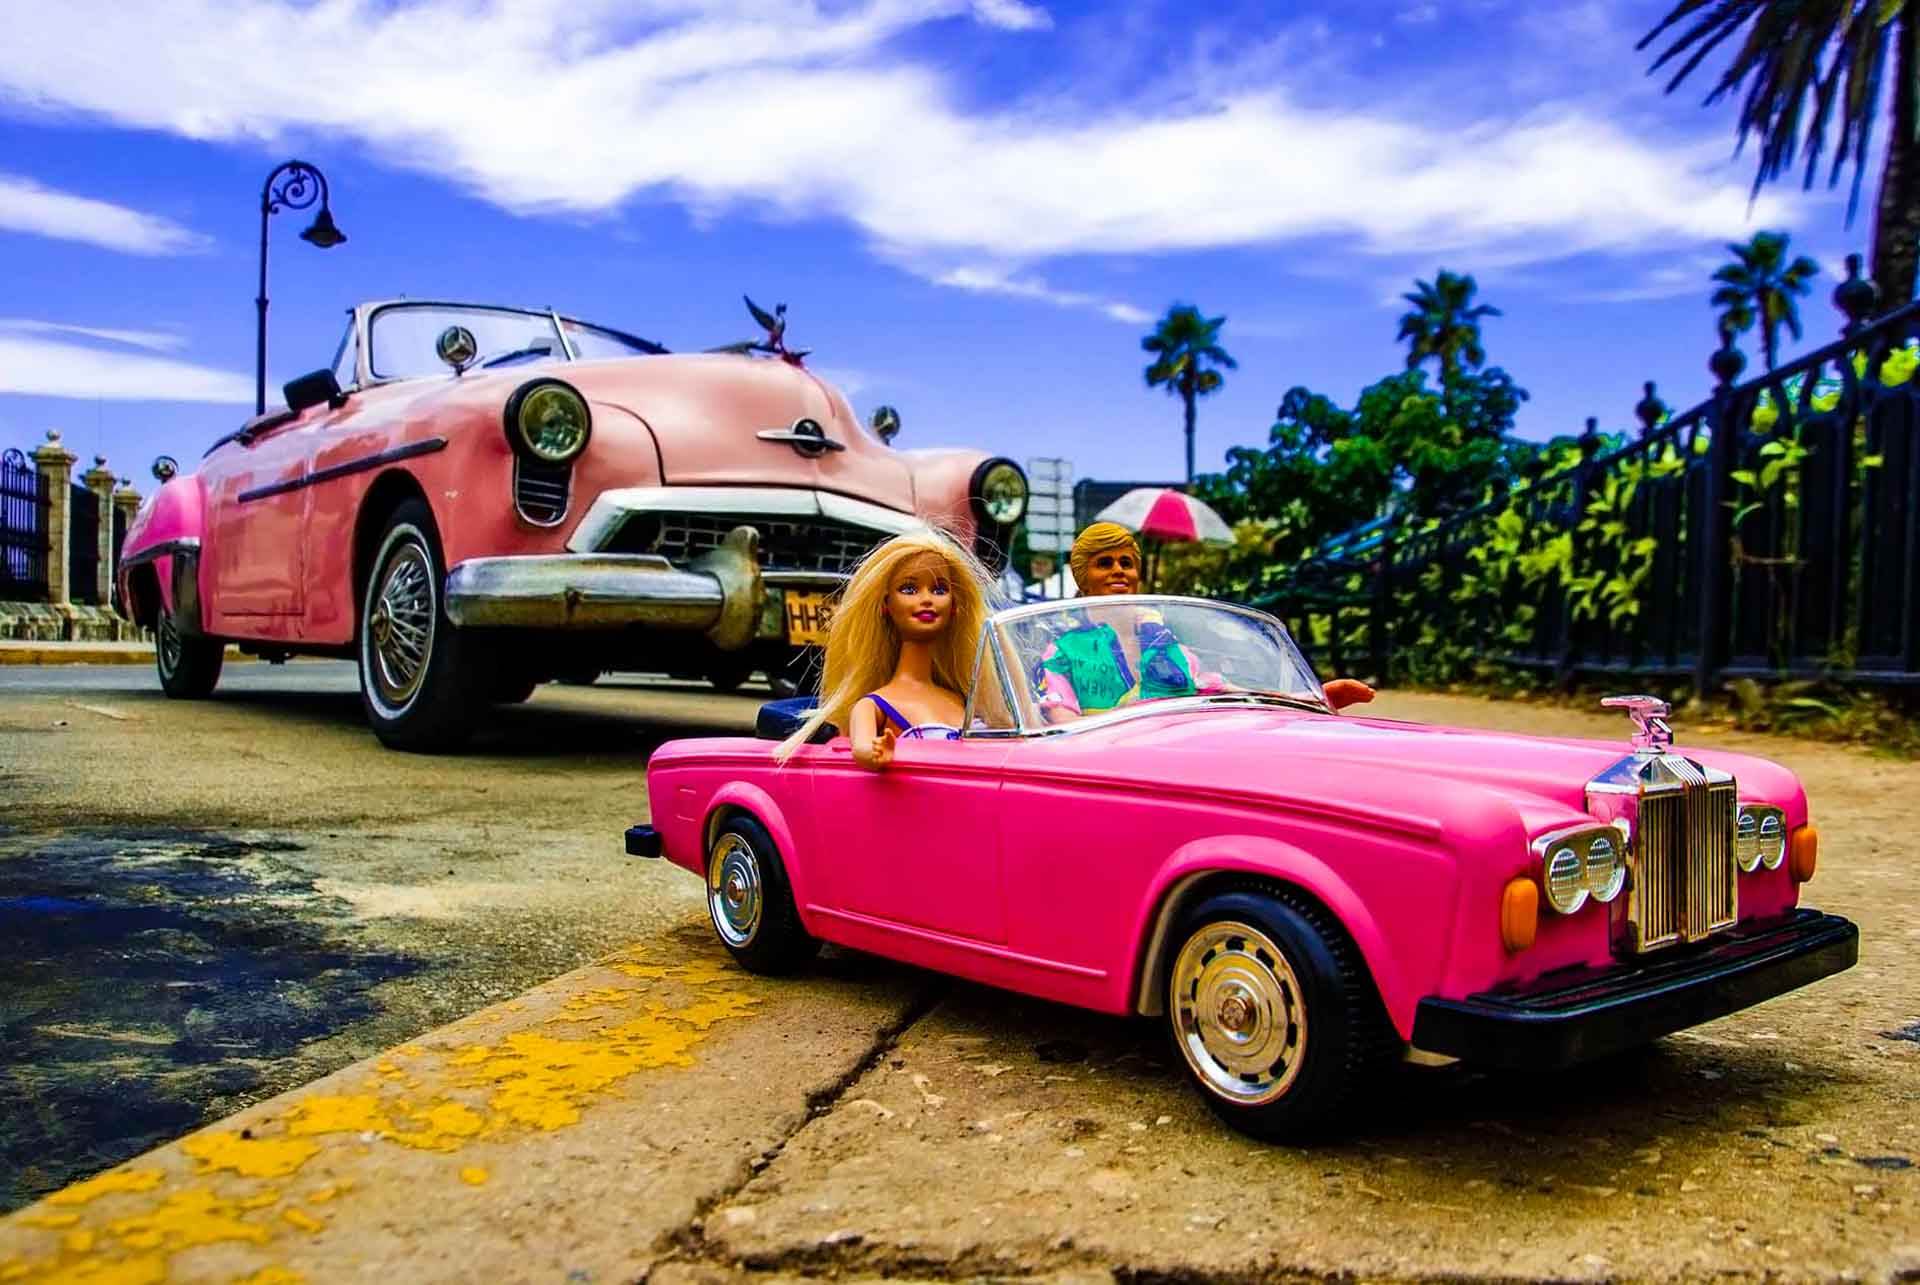 Barbie Around the World Malecon de Havana, havana, cuba, pescart, photo blog, travel blog, blog, photo travel blog, enrico pescantini, pescantini